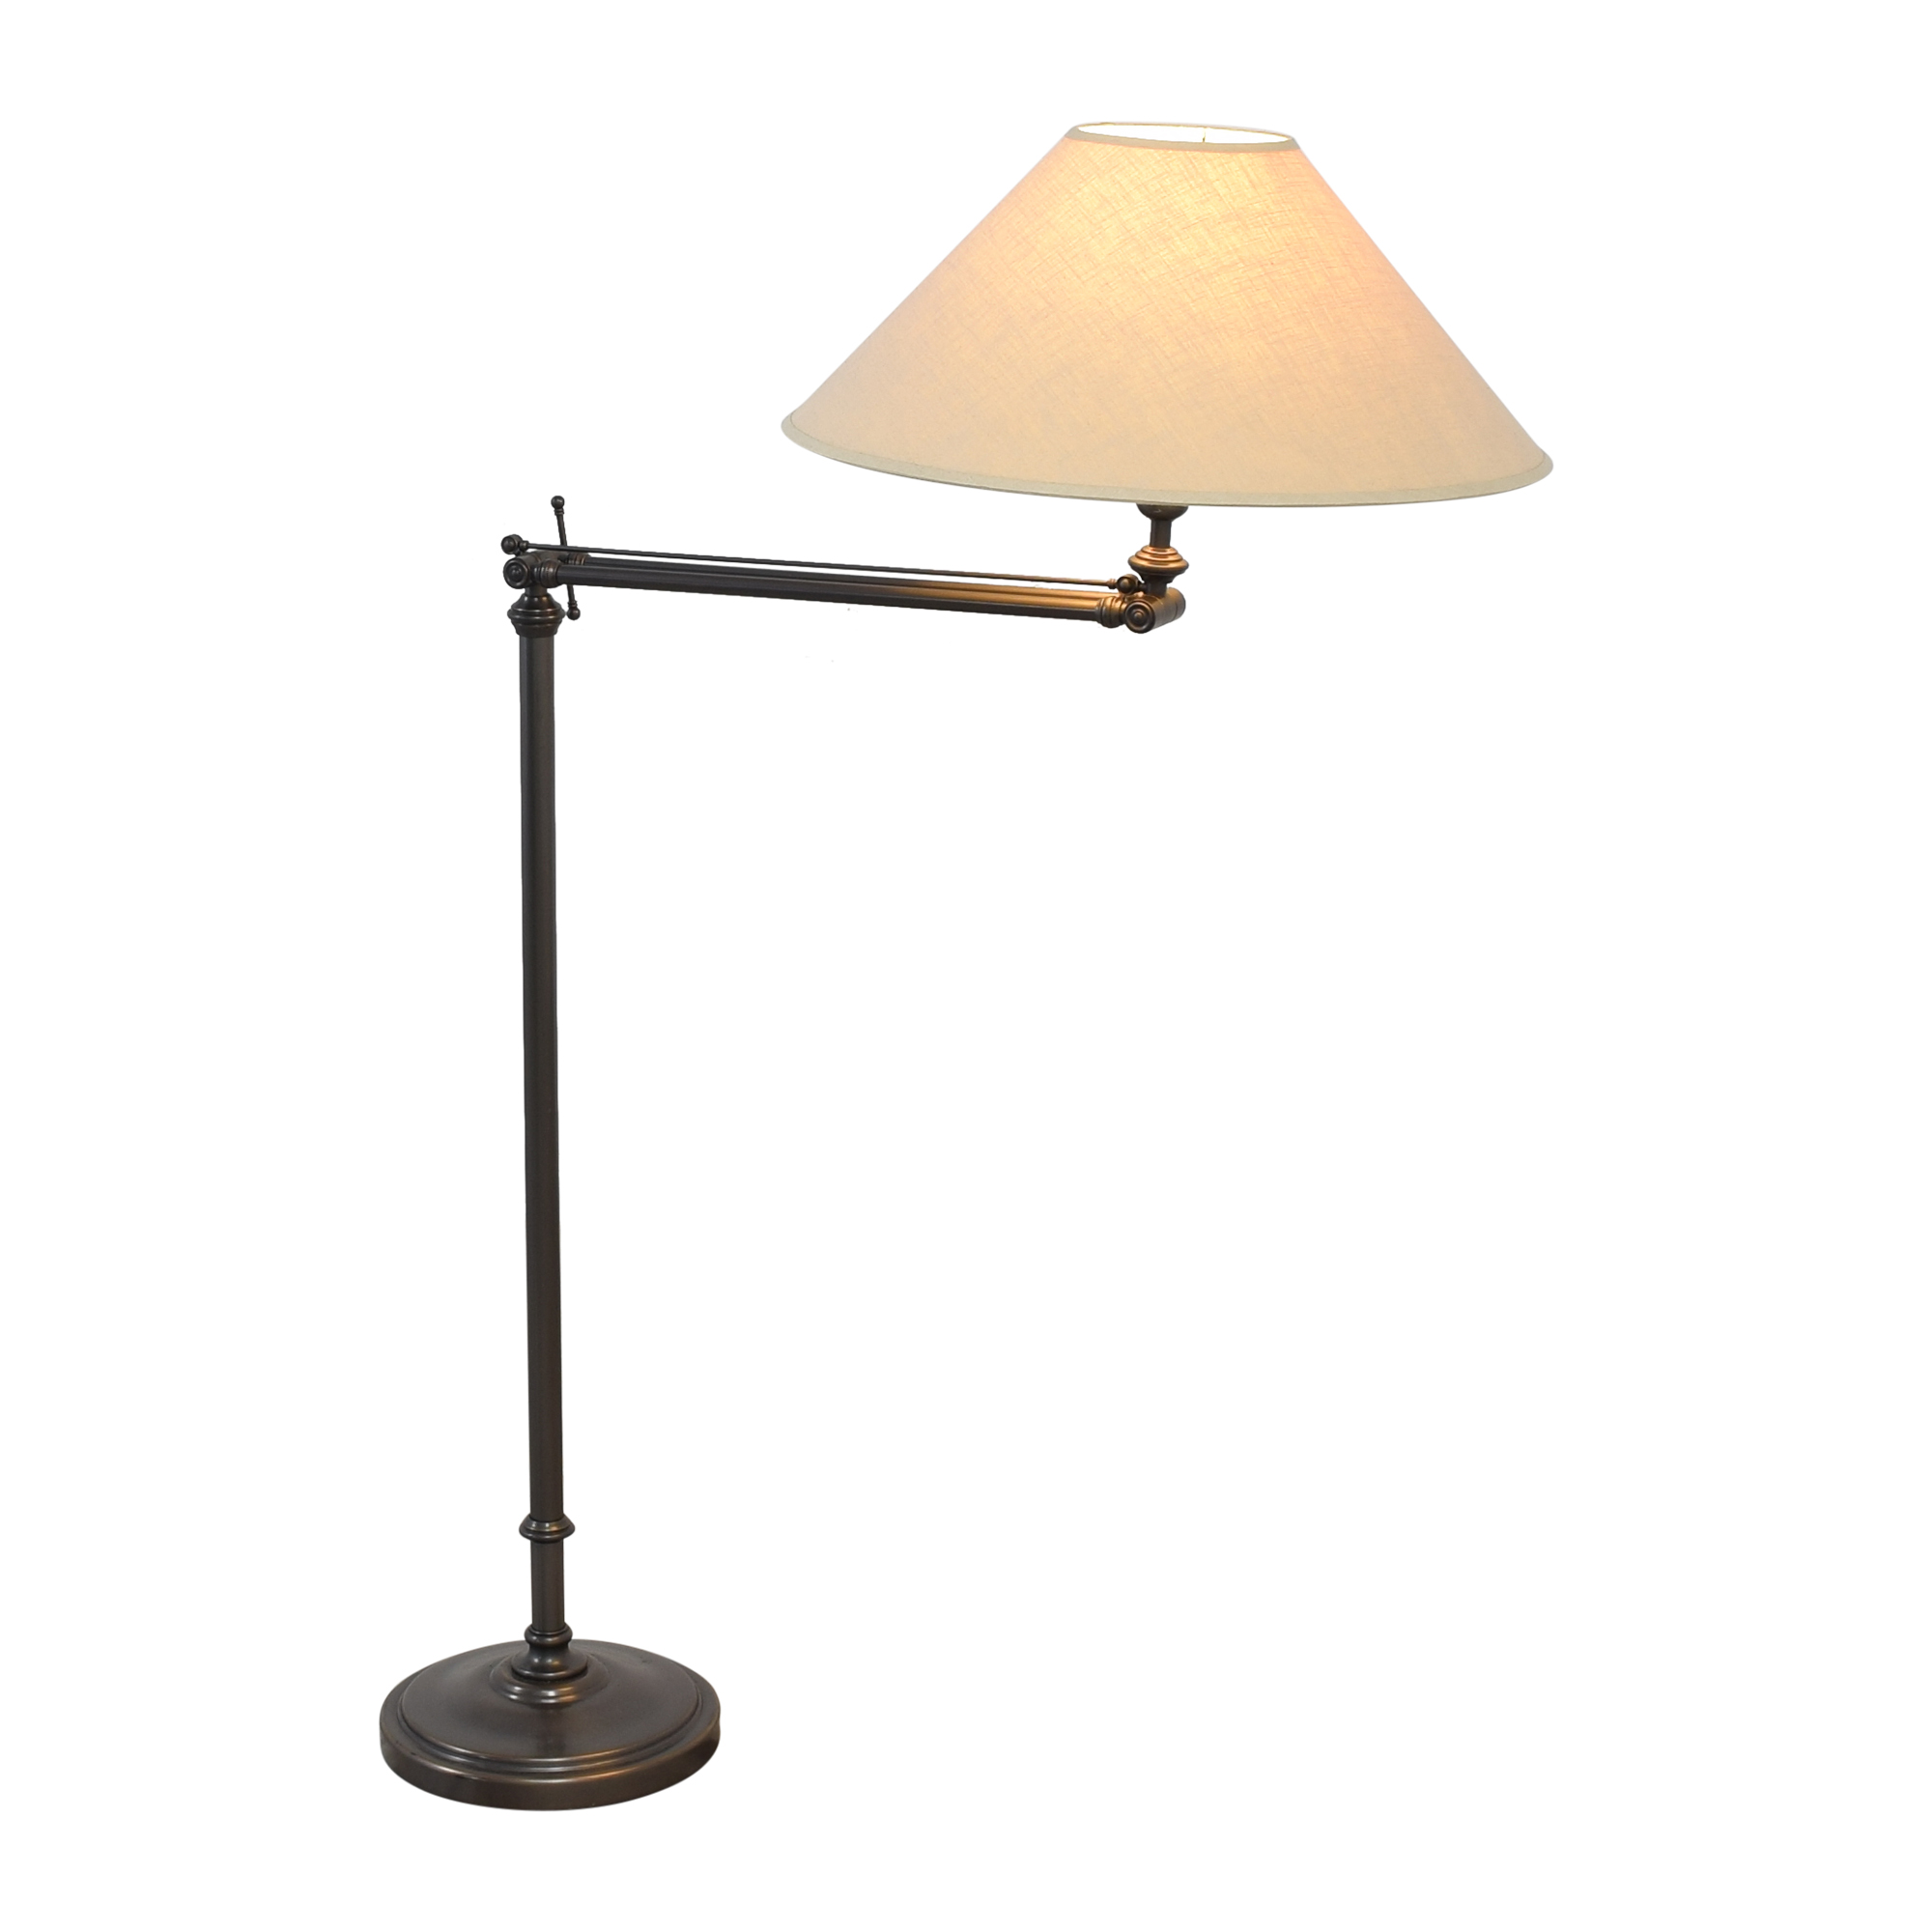 Pottery Barn Pottery Barn Articulating Floor Lamp price